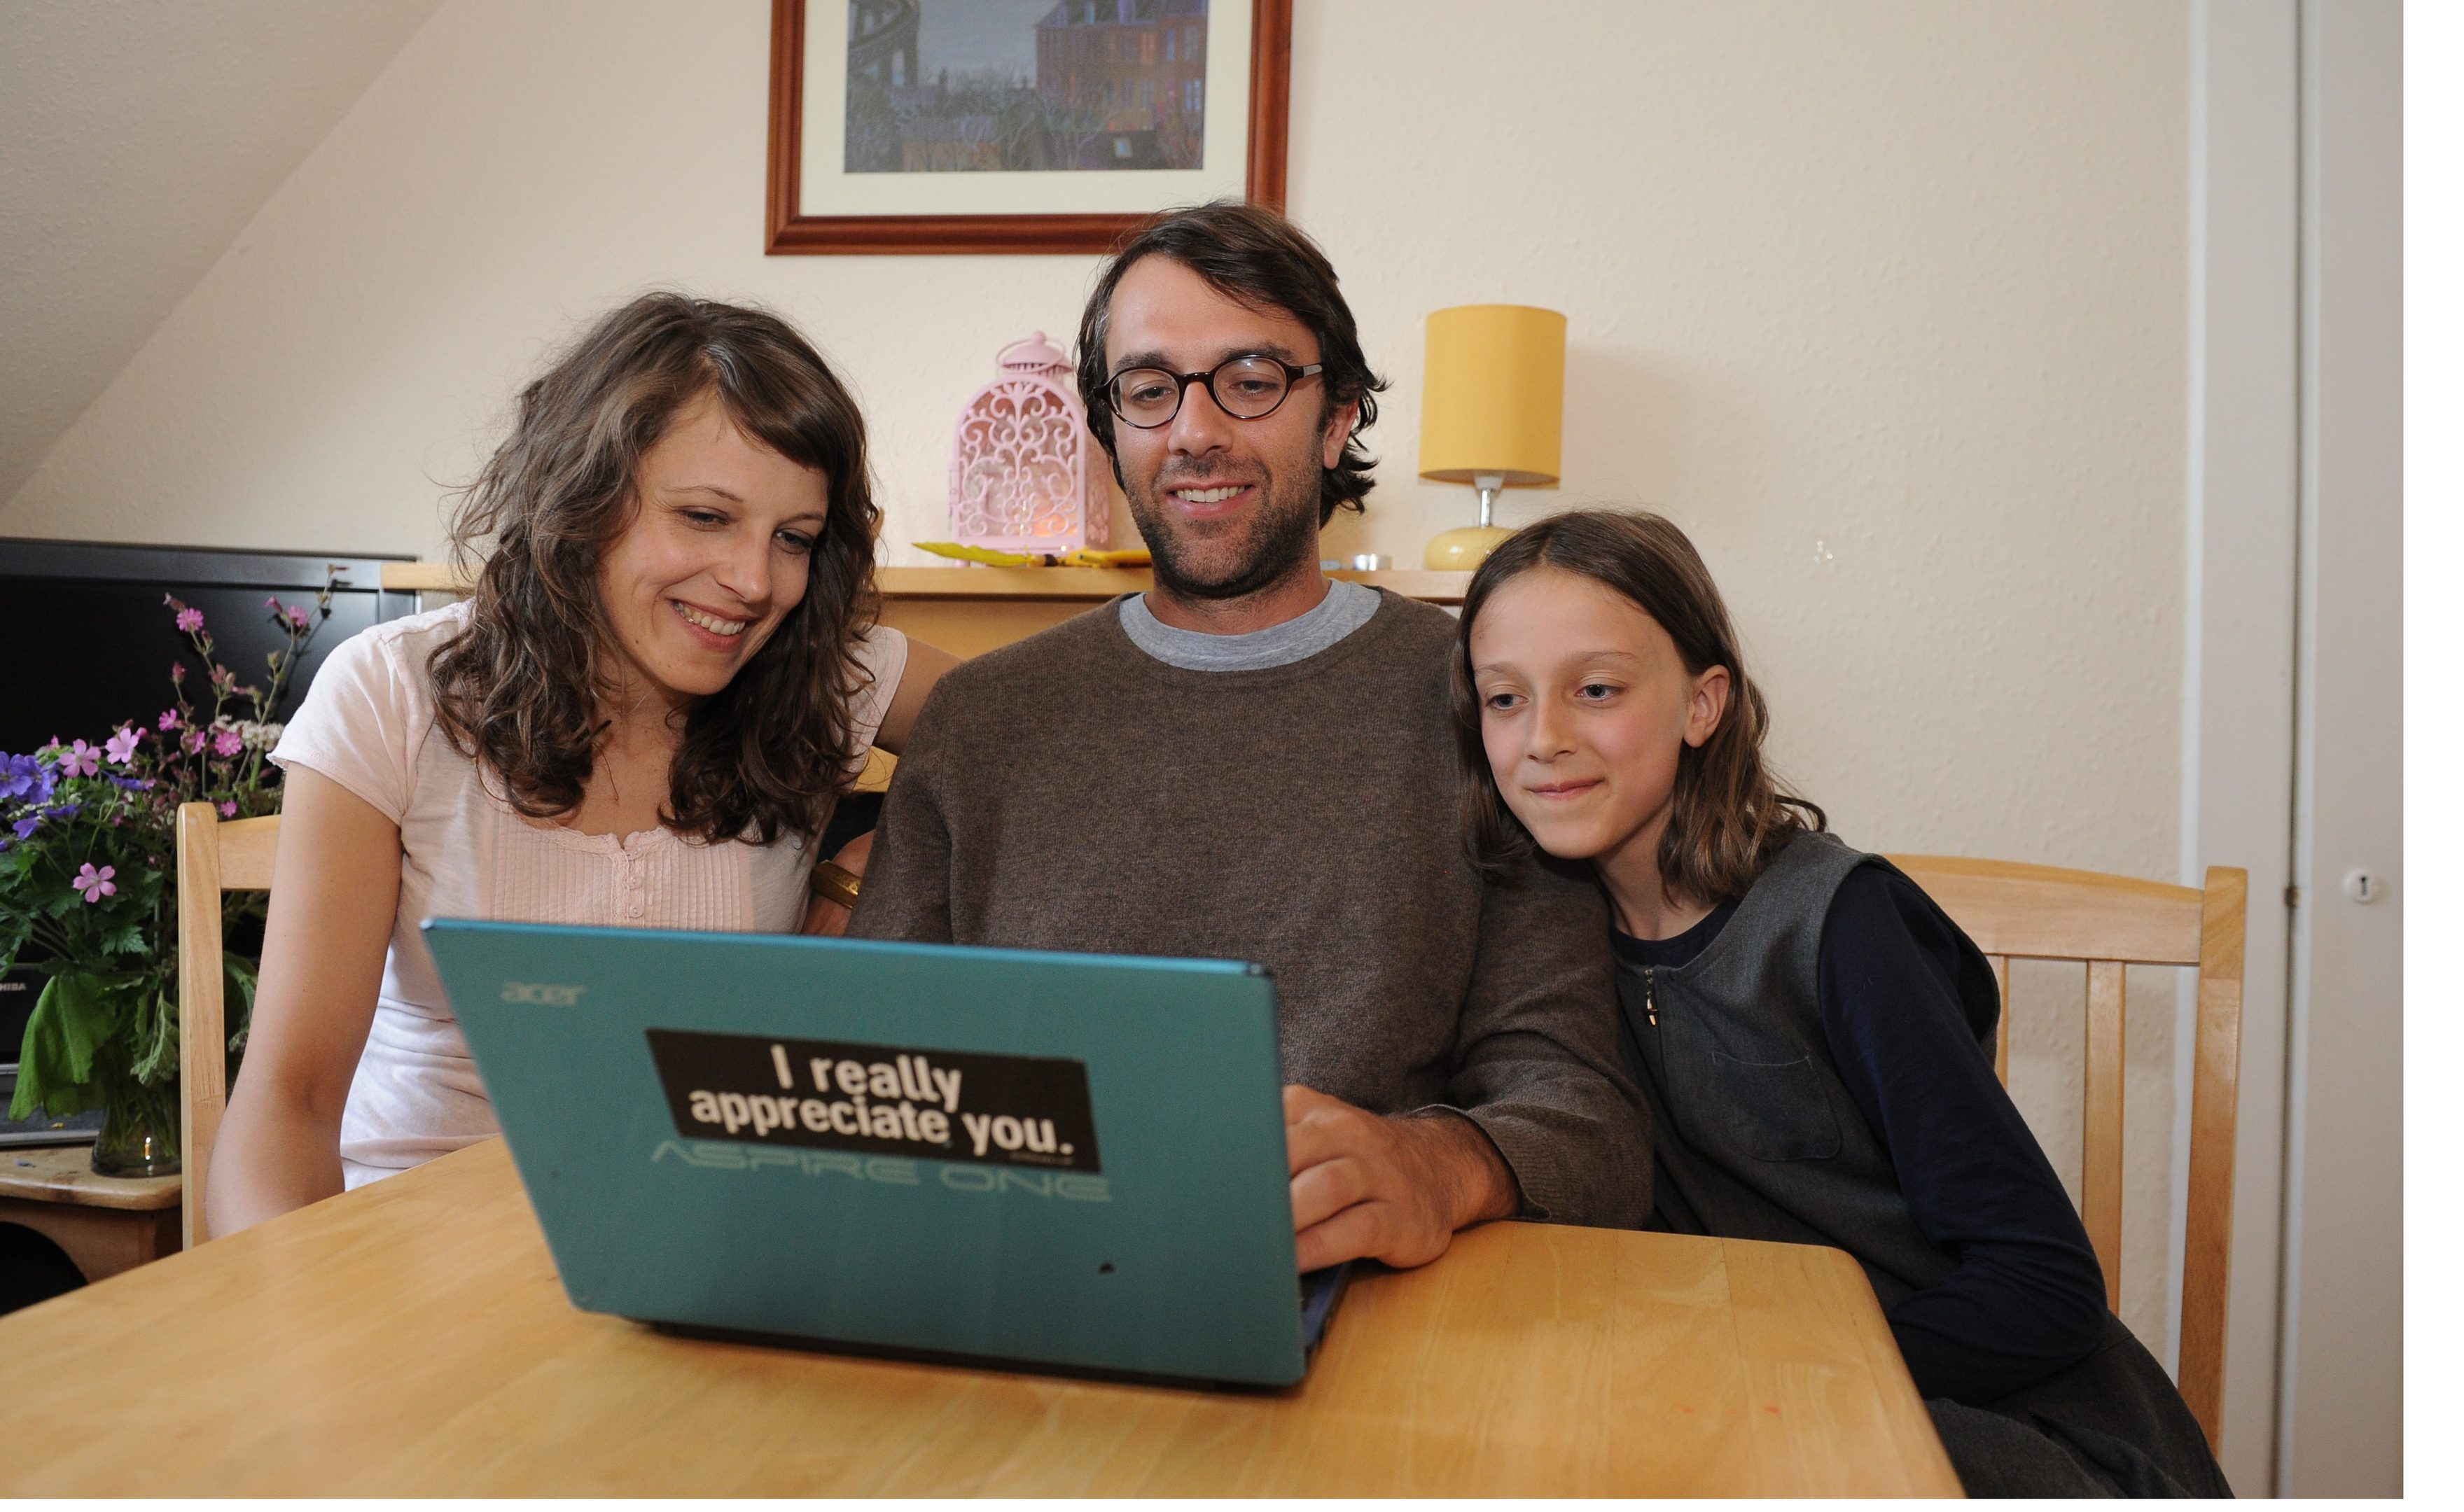 Fabien, Olga and daughter Finia Vetter, have posted a Gumtree advert to find friends.